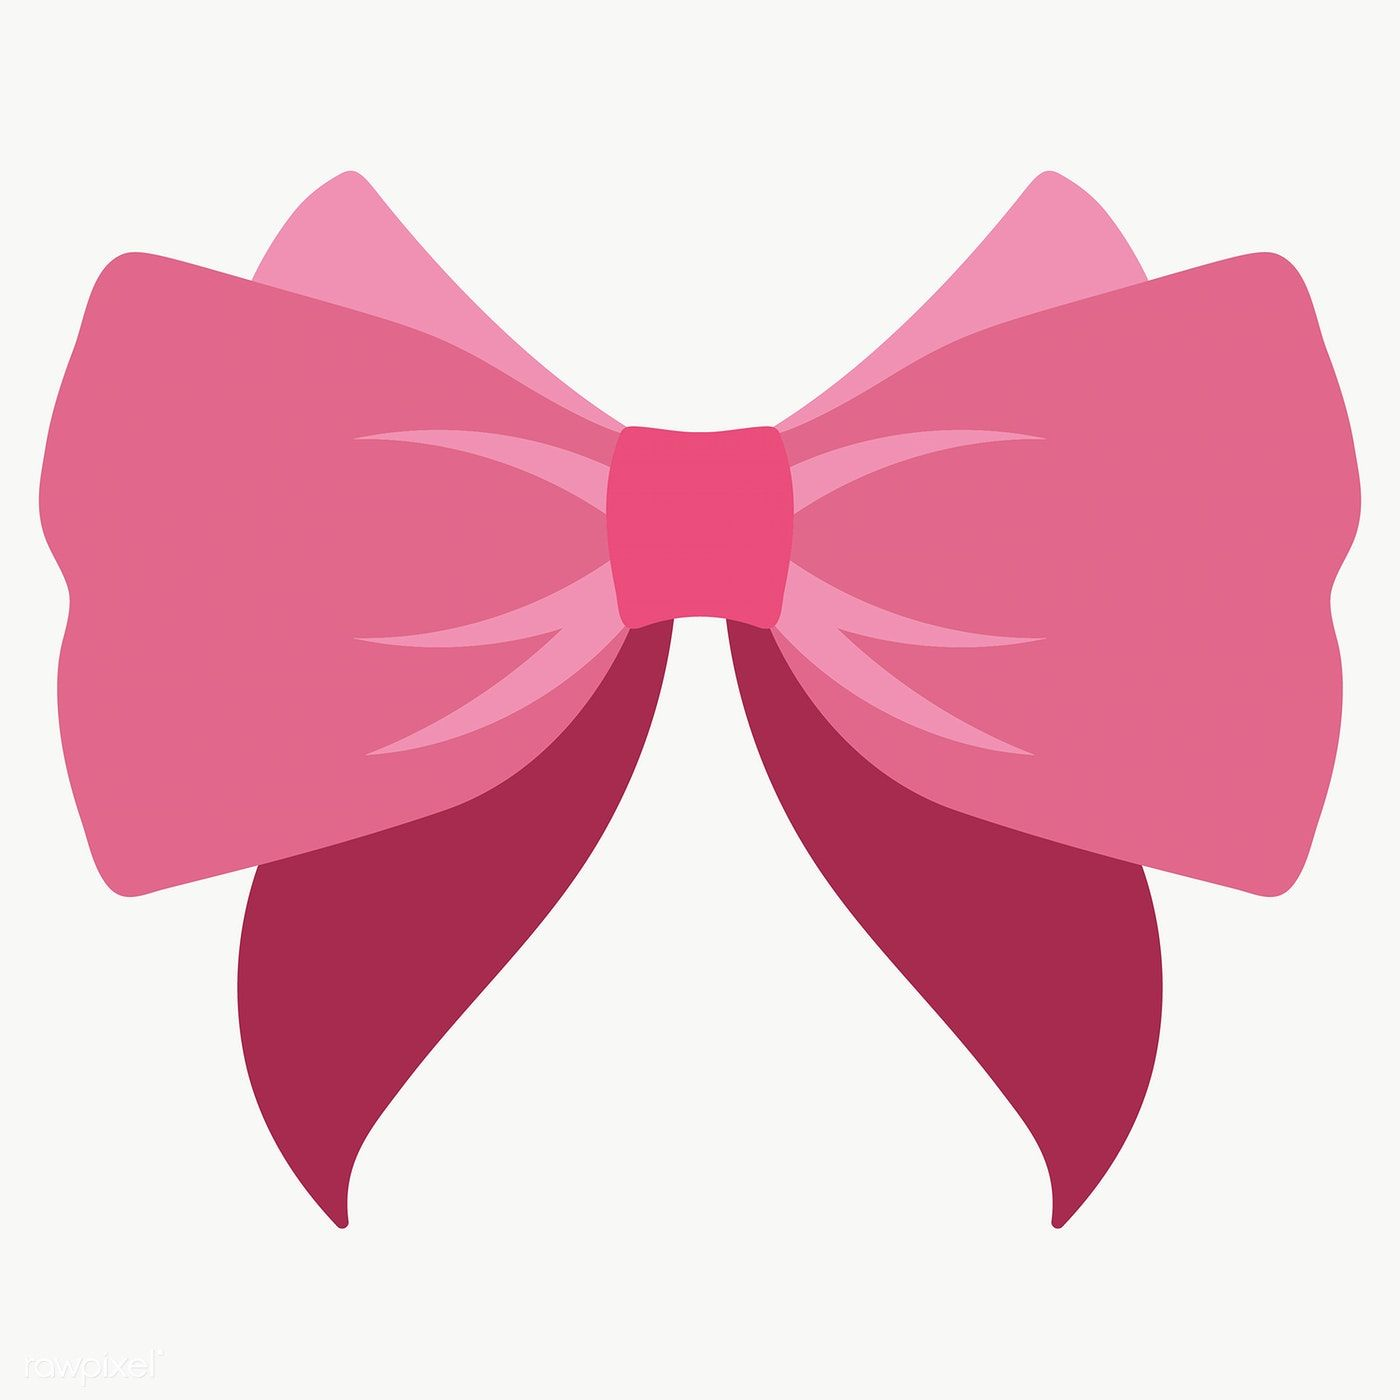 Cute Pink Bow Design Element Transparent Png Free Image By Rawpixel Com Chayanit Pink Bow Bow Design Design Element